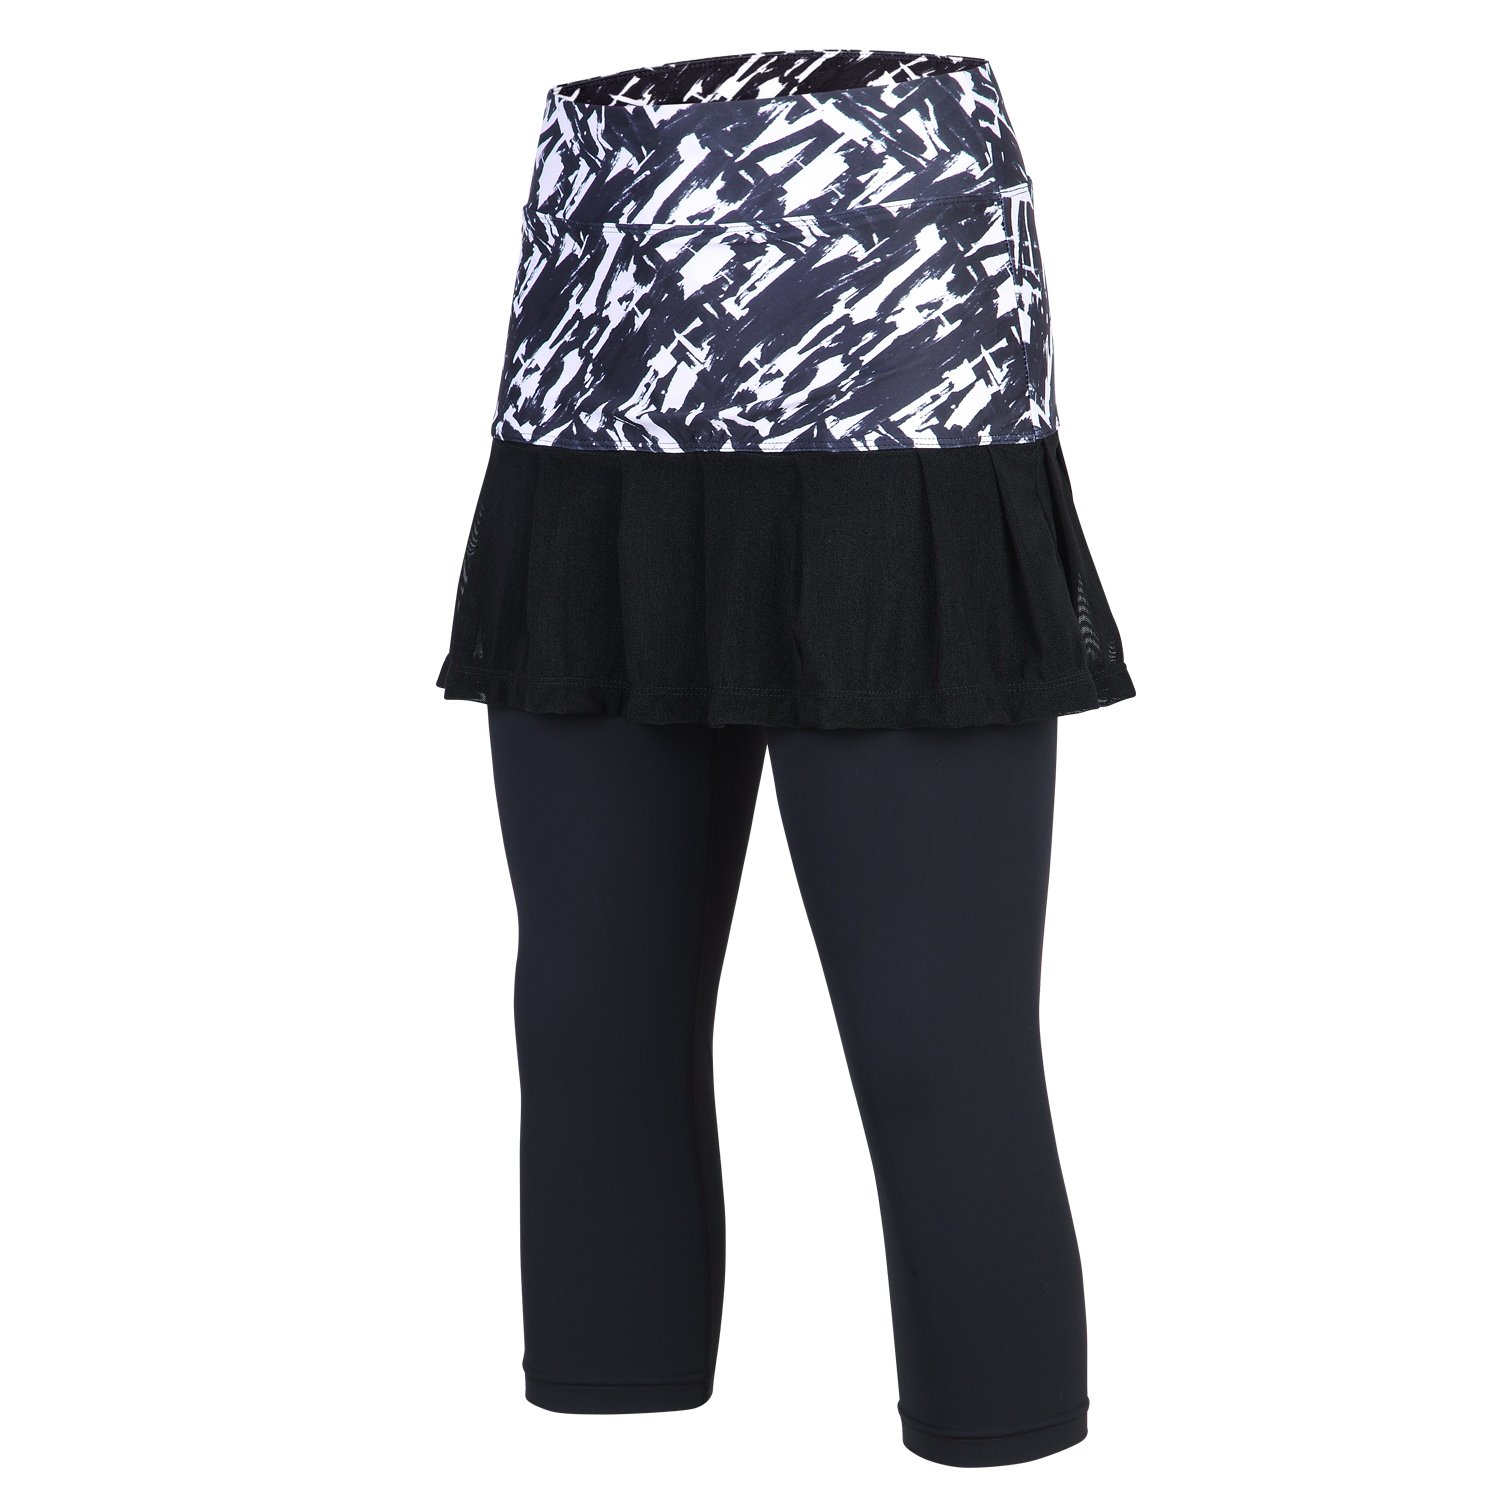 4f88782a50afff ➊3/4 or Full Length Legging + Printed Skirted: Skorts with 3/4 or full  length leggings. Combine various color printed fabric and Non-see through  material.